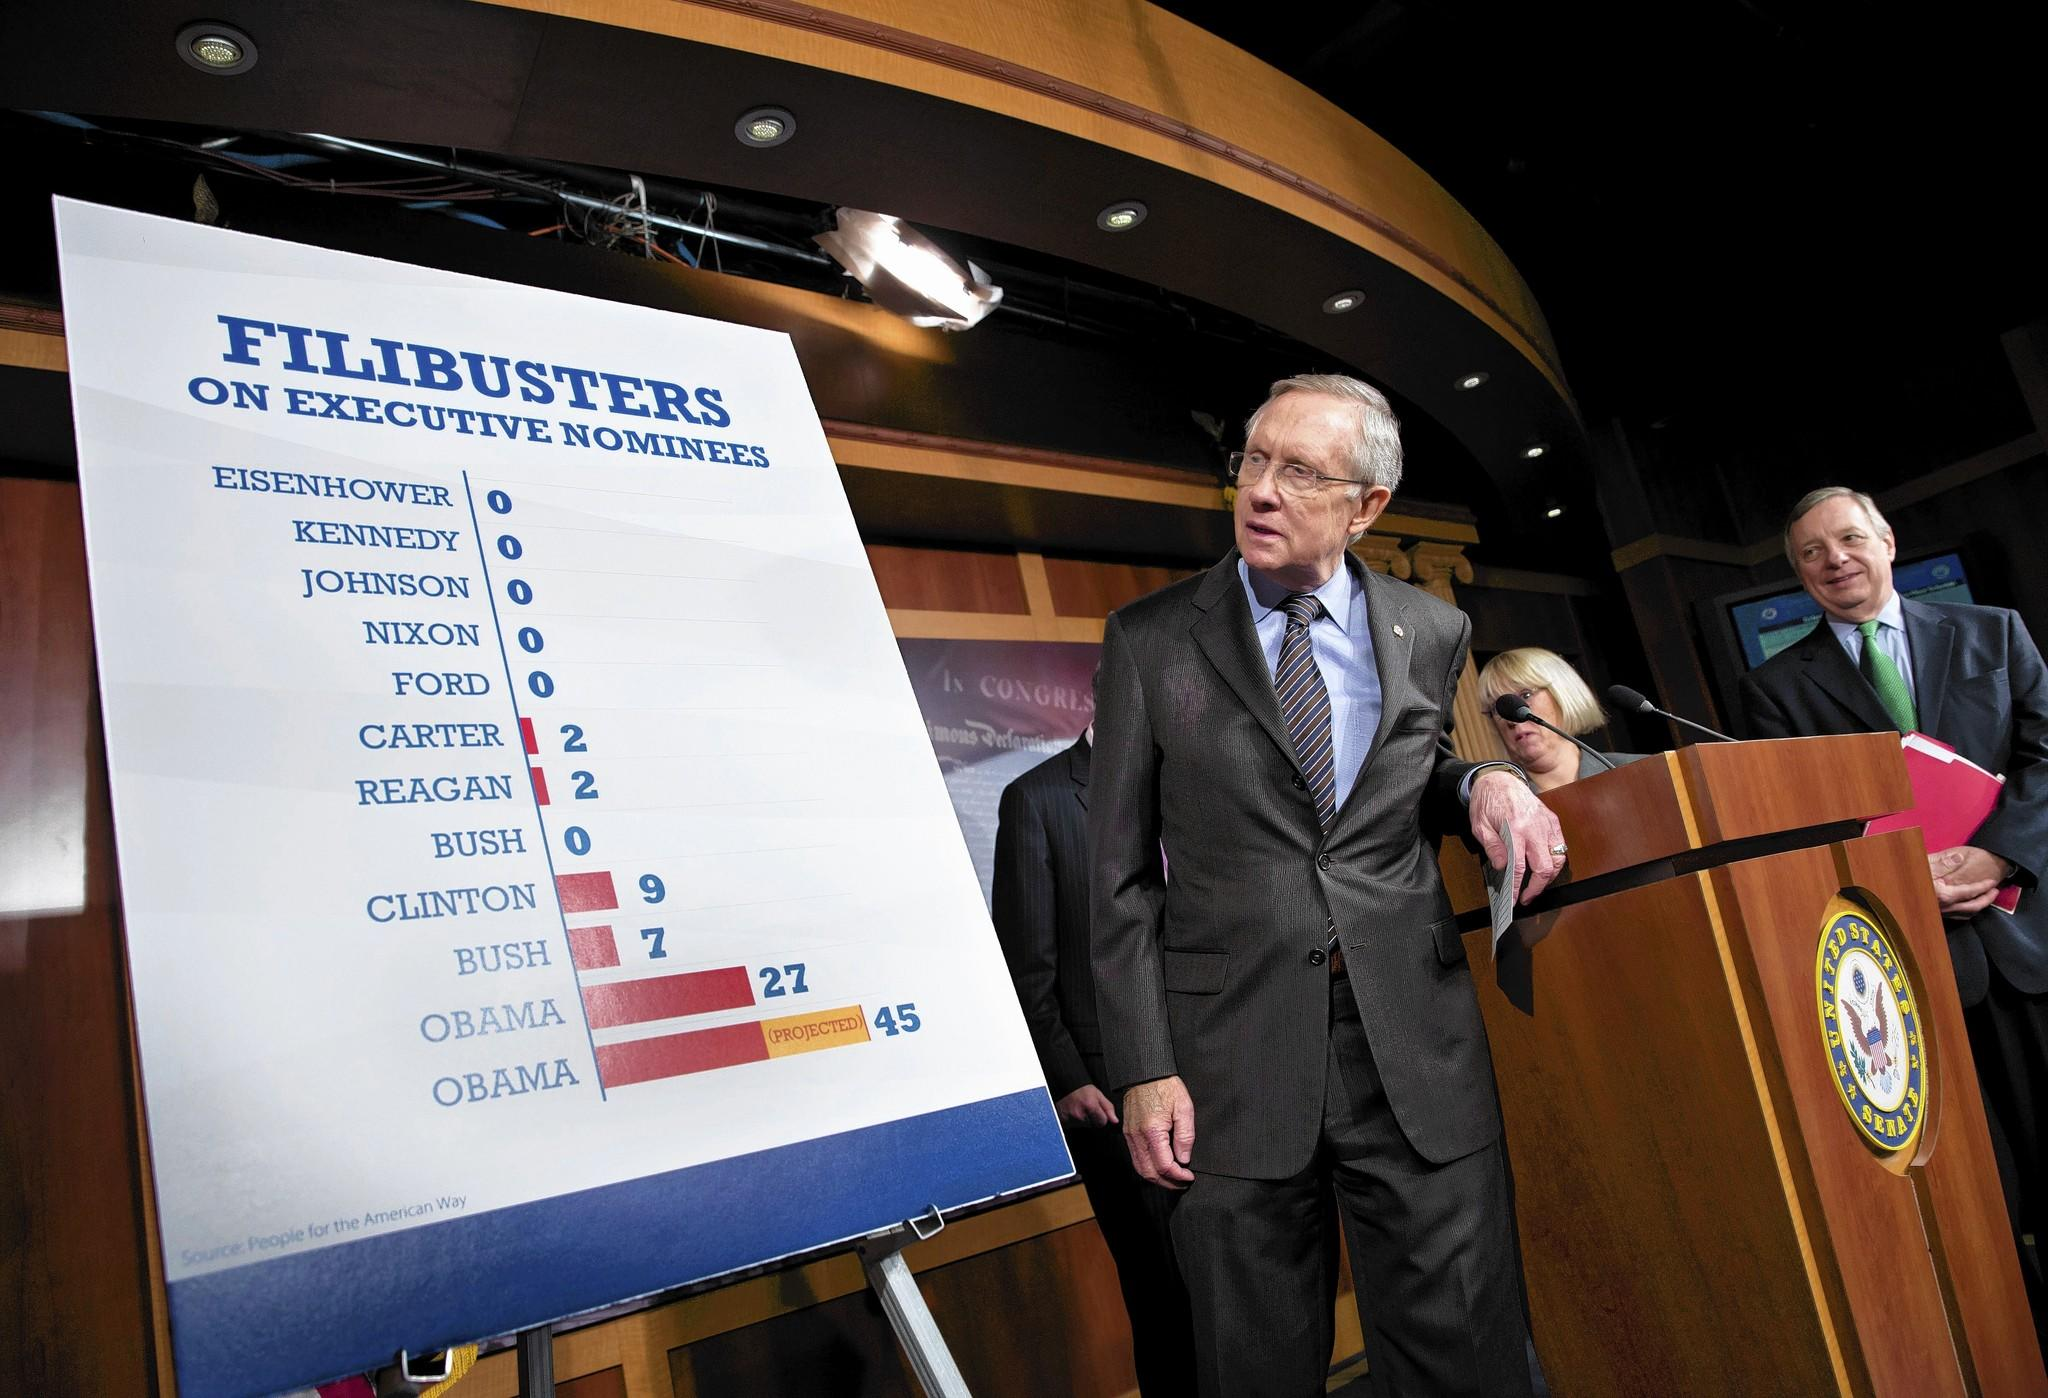 Senate Majority Leader Harry Reid (D-Nev.) speaks last month about Democrats' decision to change long-standing filibuster rules for most judicial and executive nominees.